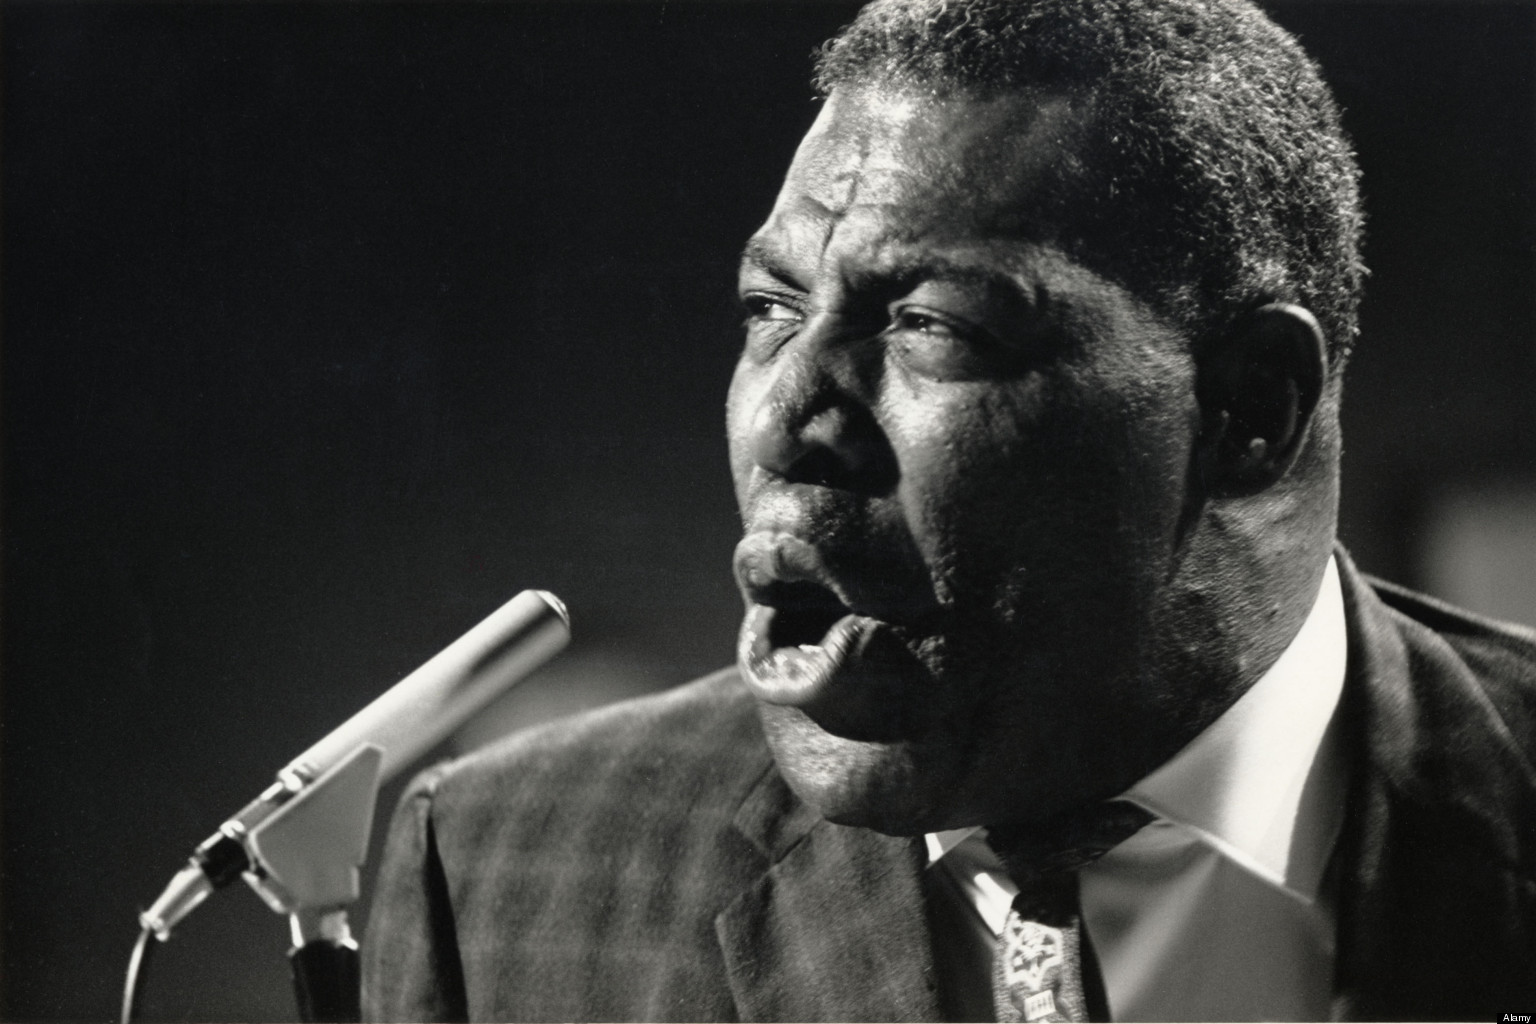 HOWLIN WOLF - US Blues singer on Ready, Steady, Go in December 1964